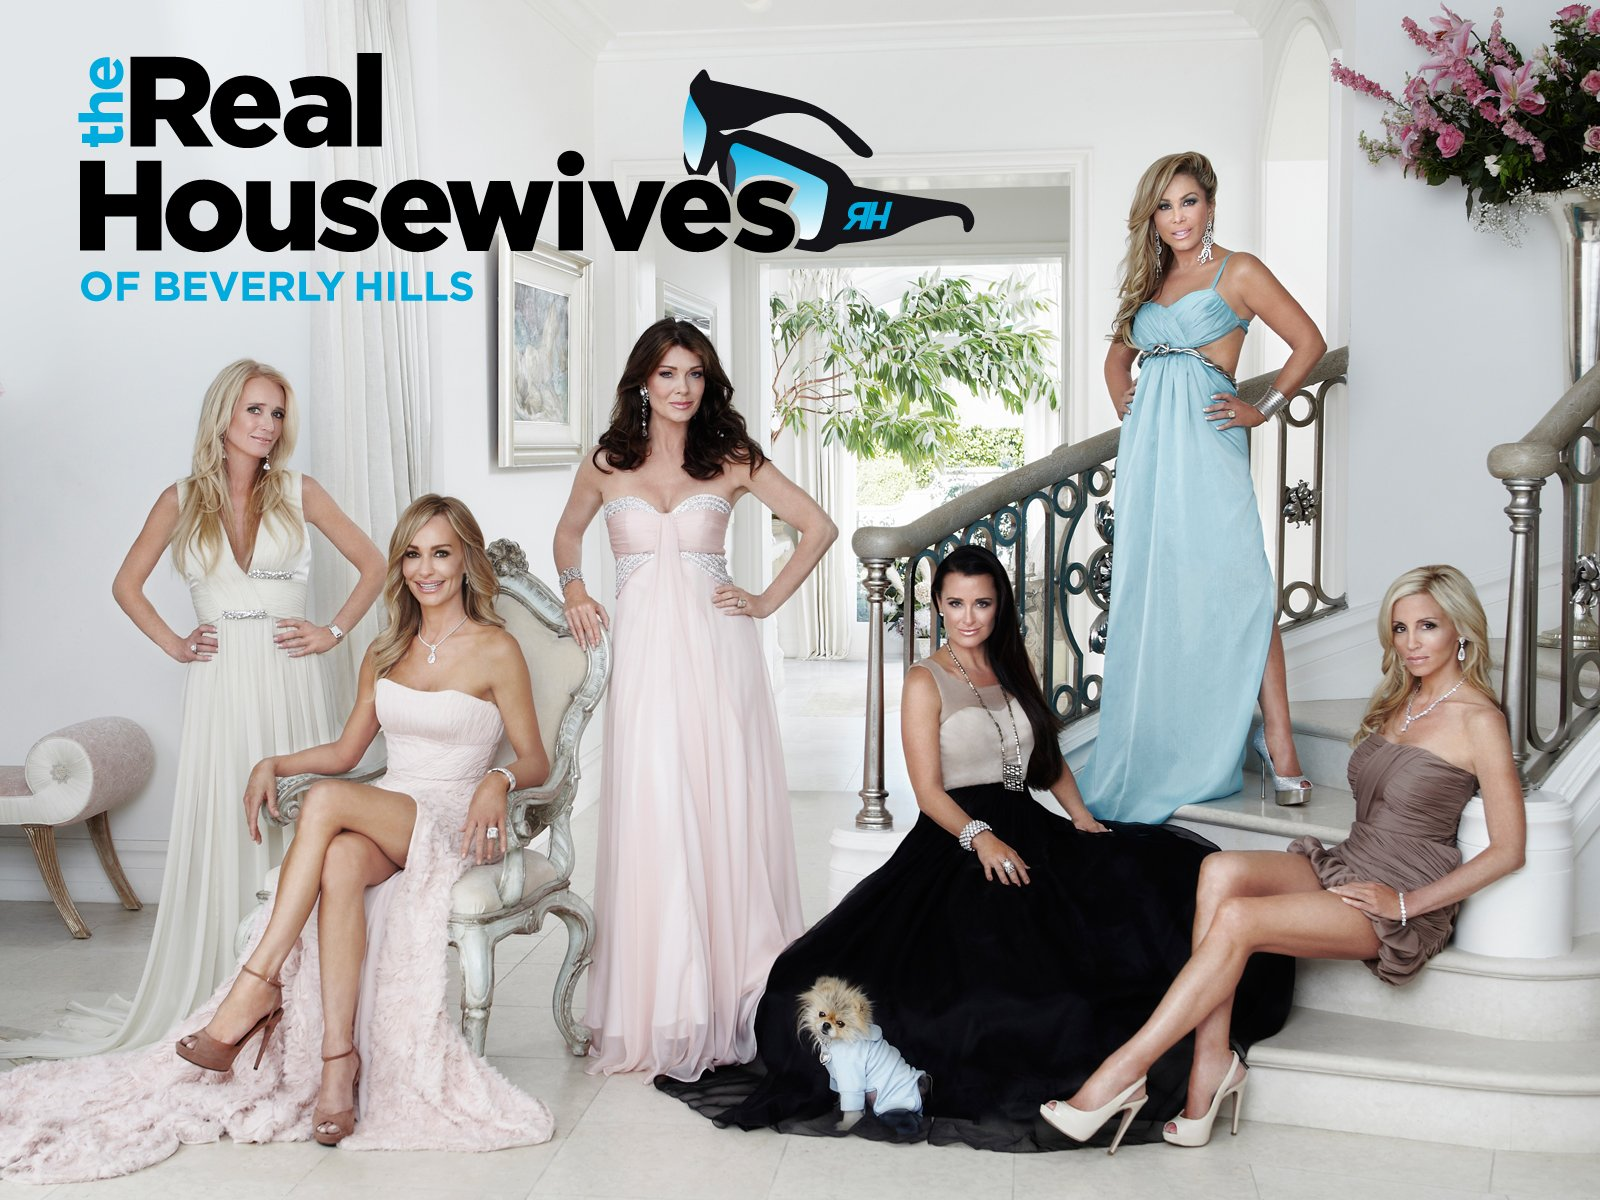 Real ex wives of beverly hills